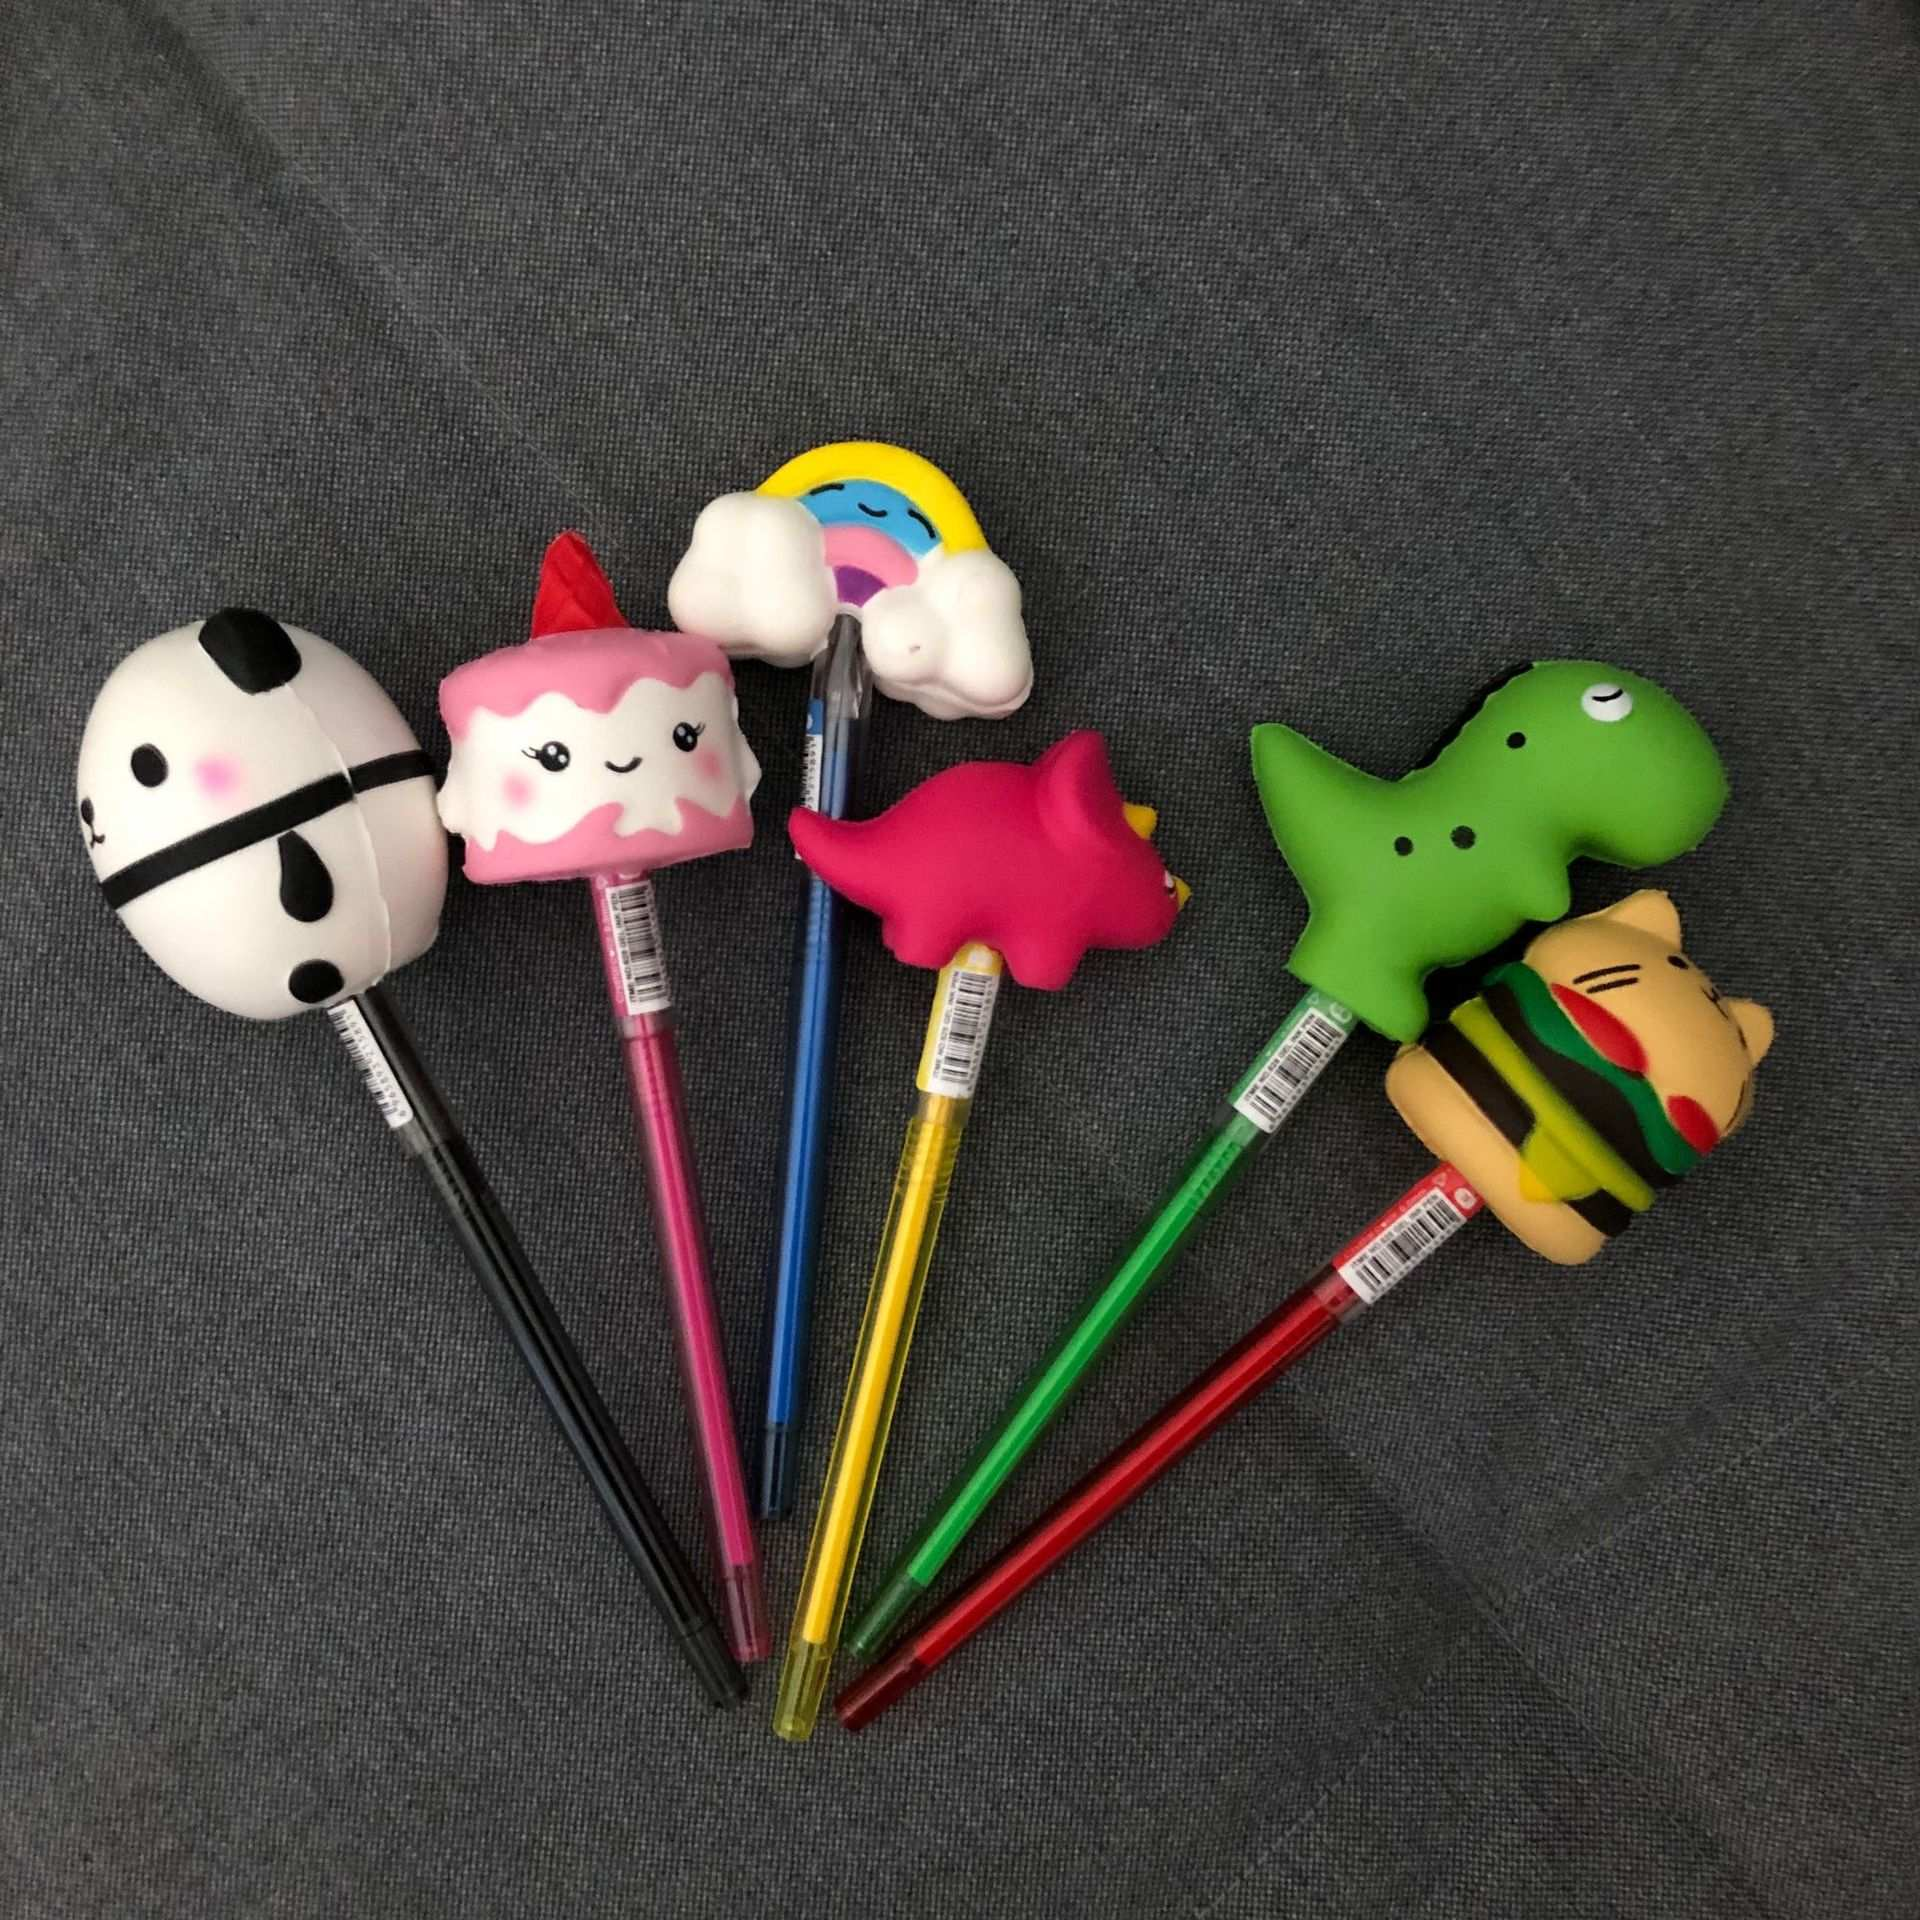 Squishying Pen Cap Panda Dinosaur Cake Animal Slow Rising Jumbo With Pen Stress Relief Toys Student School Supplies Office Gift(China)